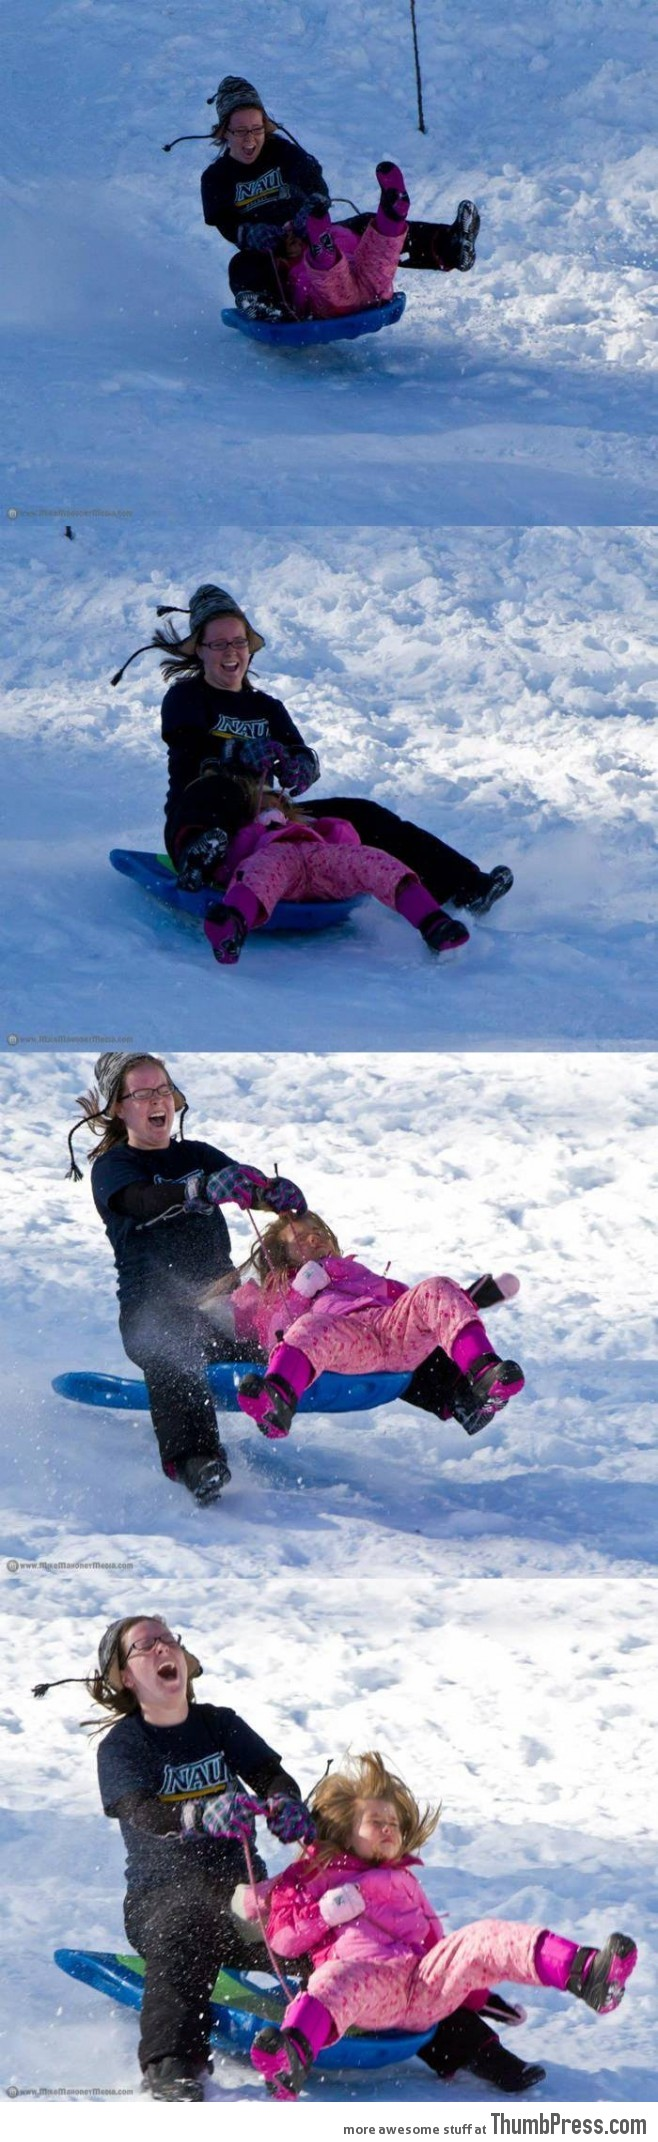 At least one of them was having fun sledding.